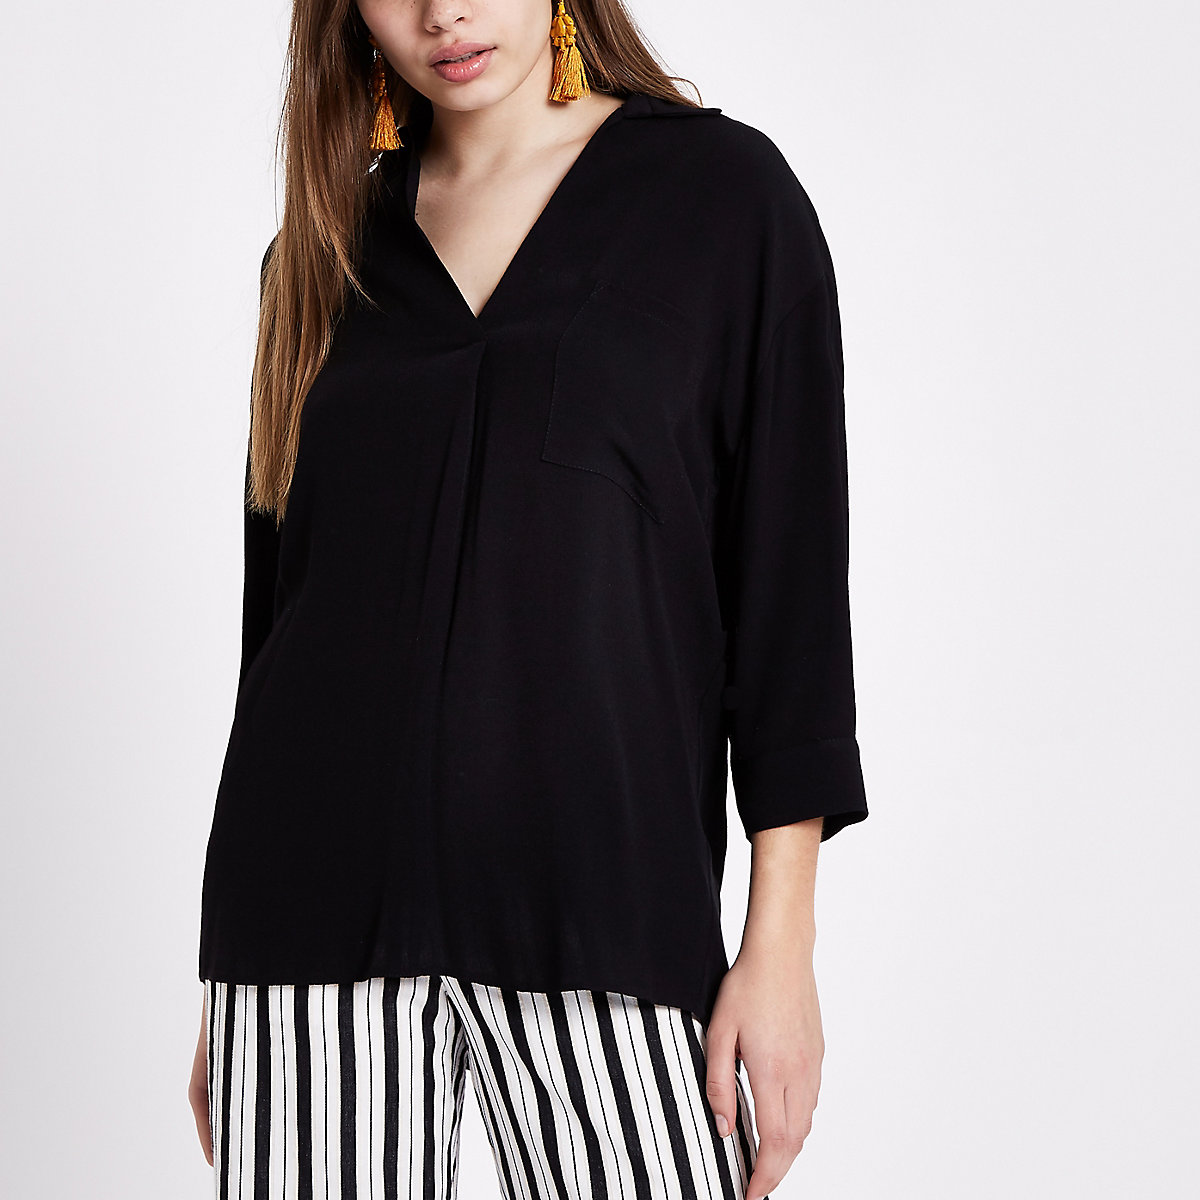 Black cross back blouse